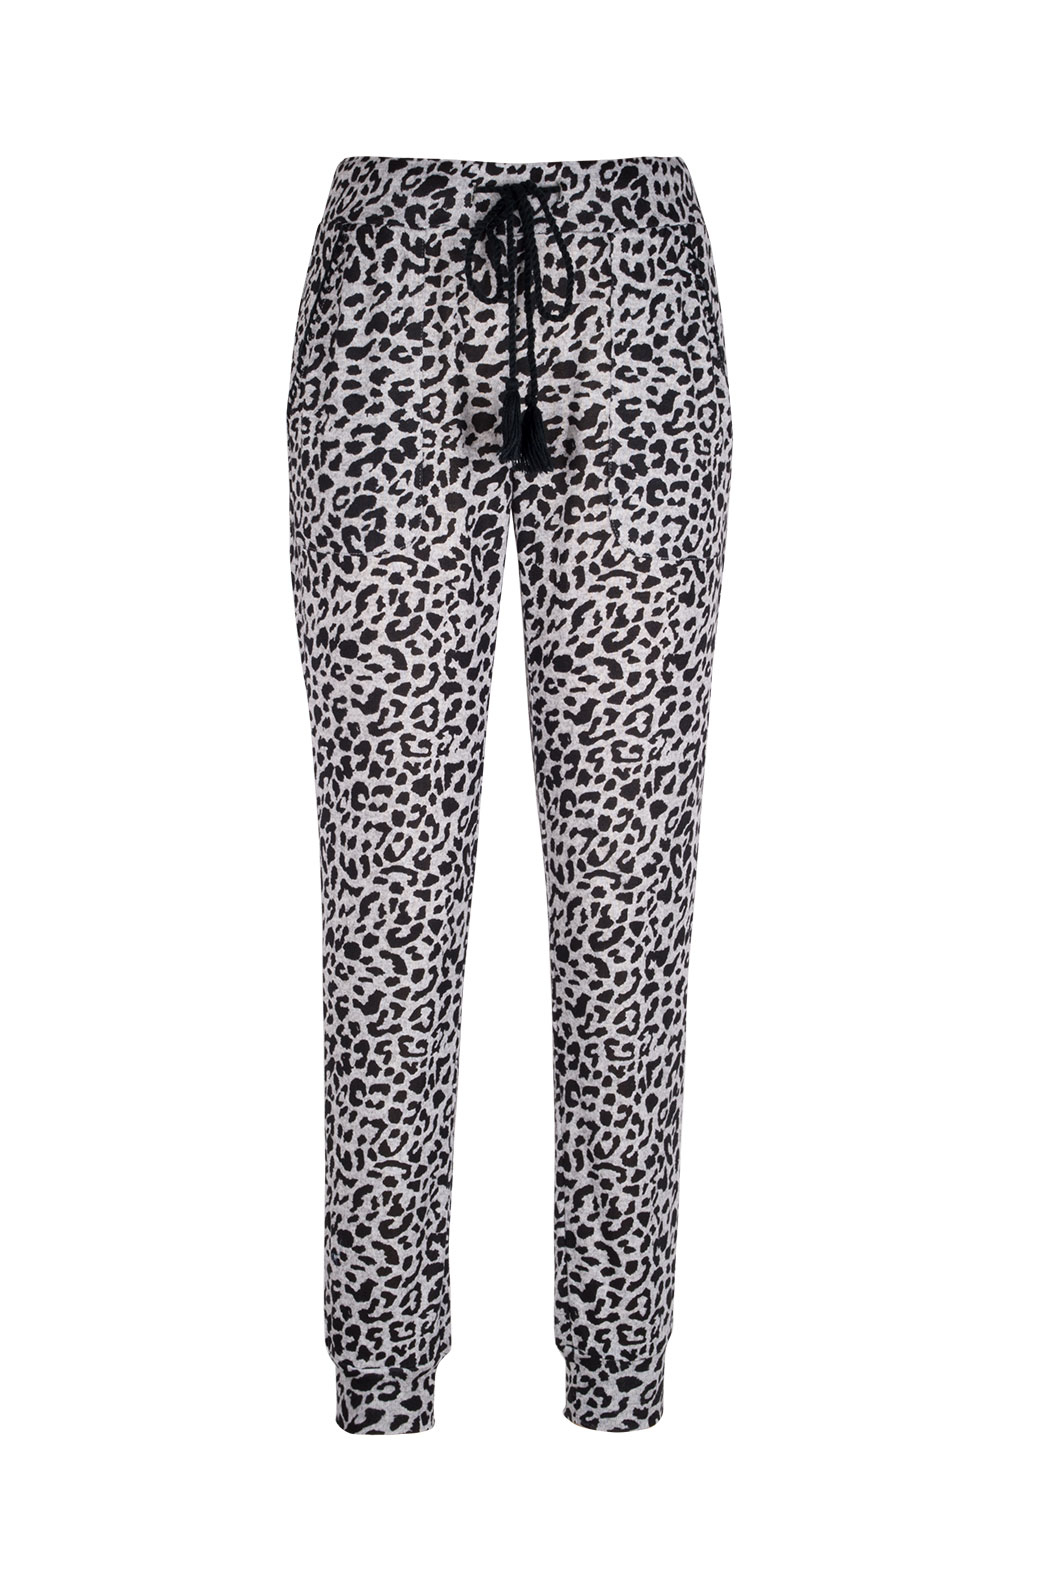 Billy T Jungle Jogger Pants - Front Cropped Image